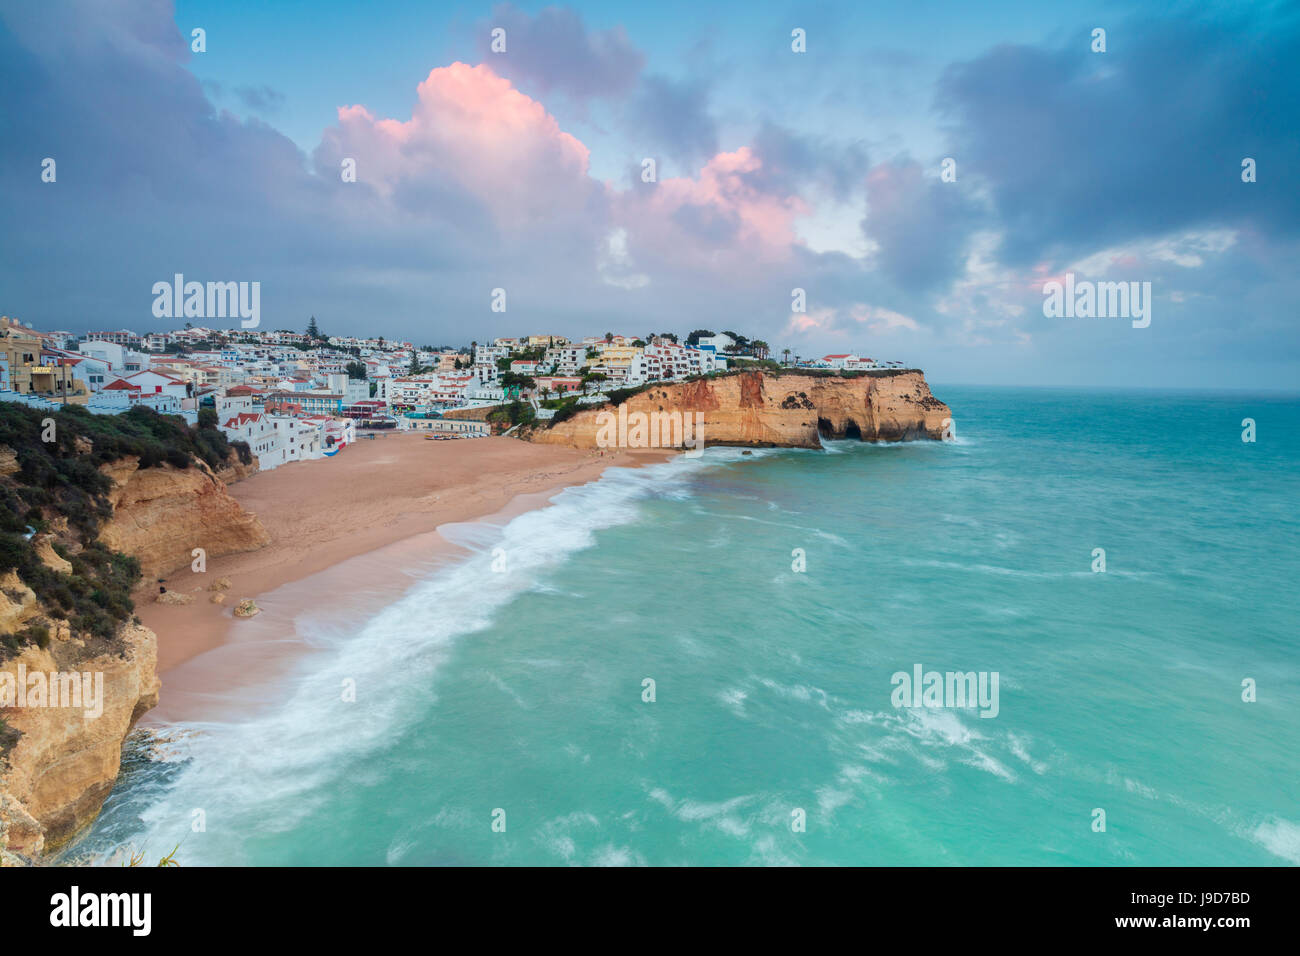 View of Carvoeiro village surrounded by sandy beach and turquoise sea at sunset, Lagoa Municipality, Algarve, Portugal, Stock Photo